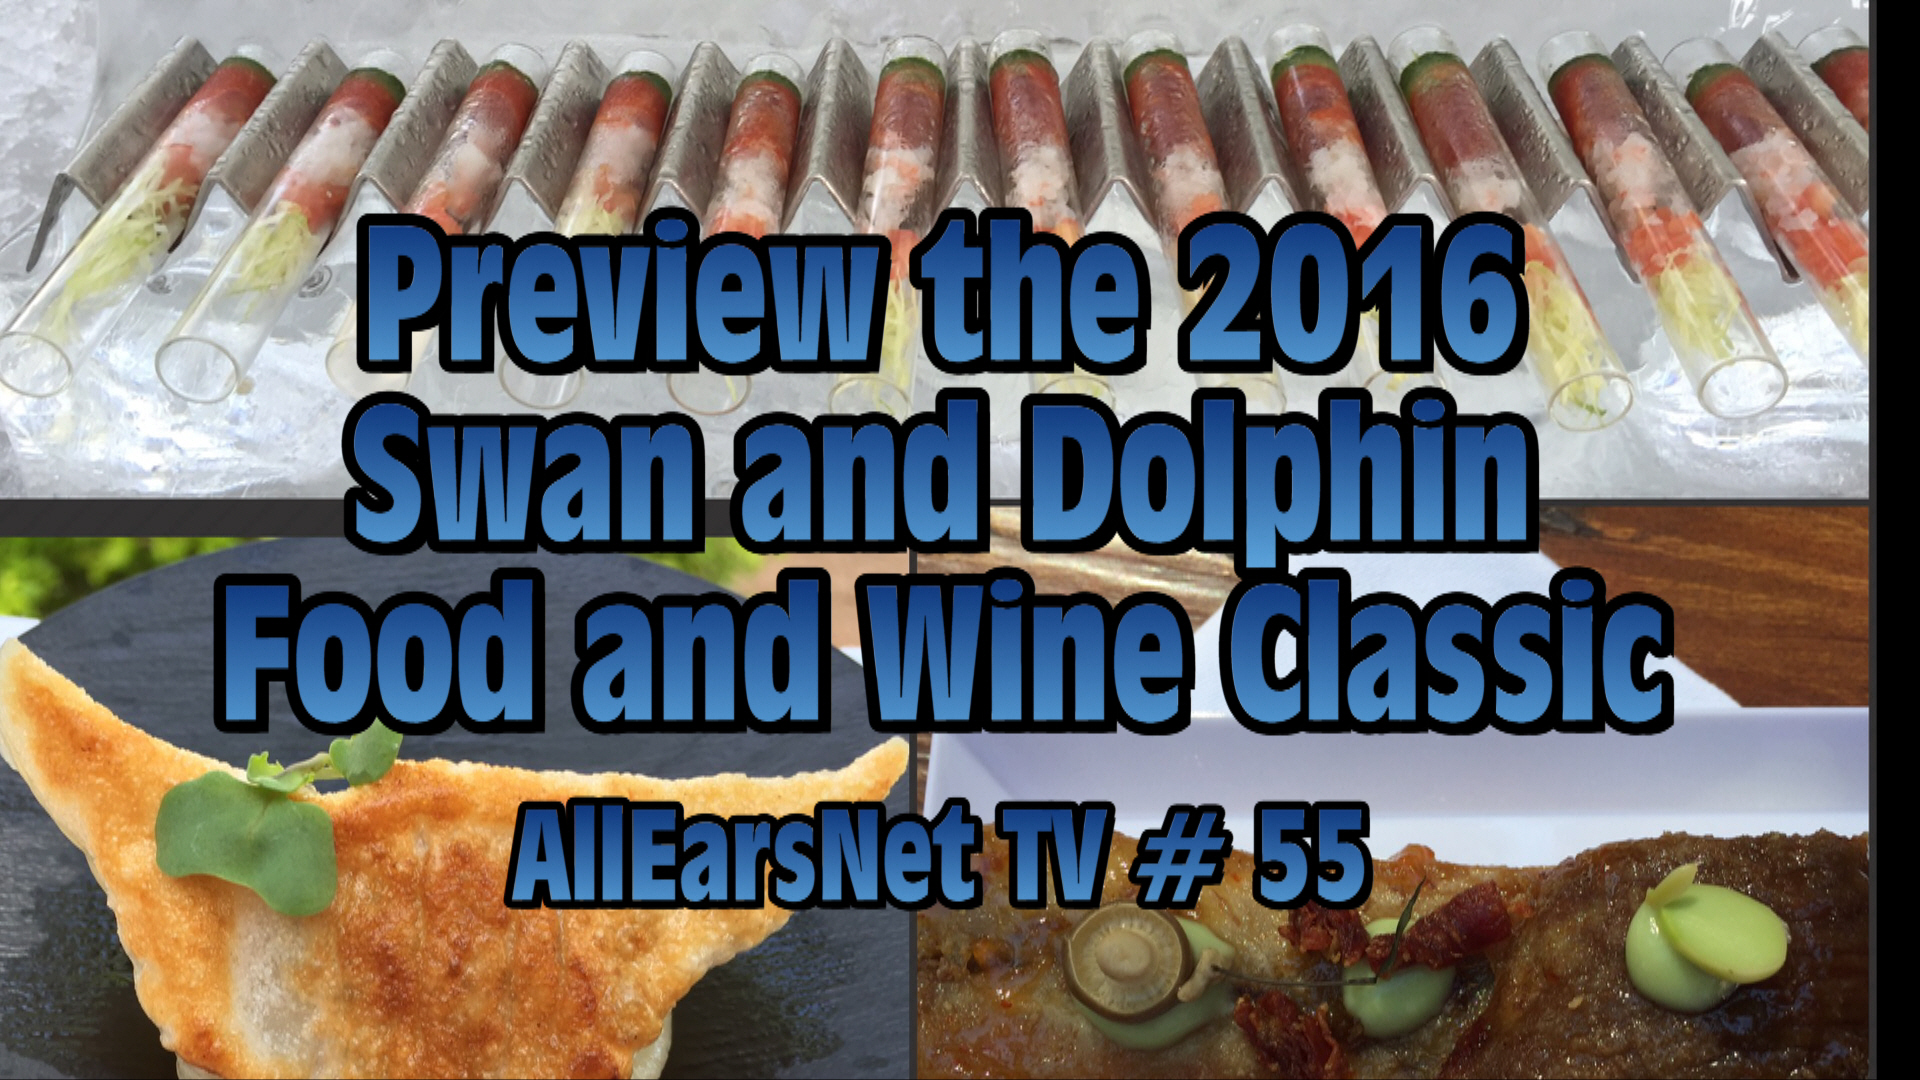 Preview the Walt Disney World Swan and Dolphin Food and Wine Classic - October 28 - 29! AllEarsNet TV